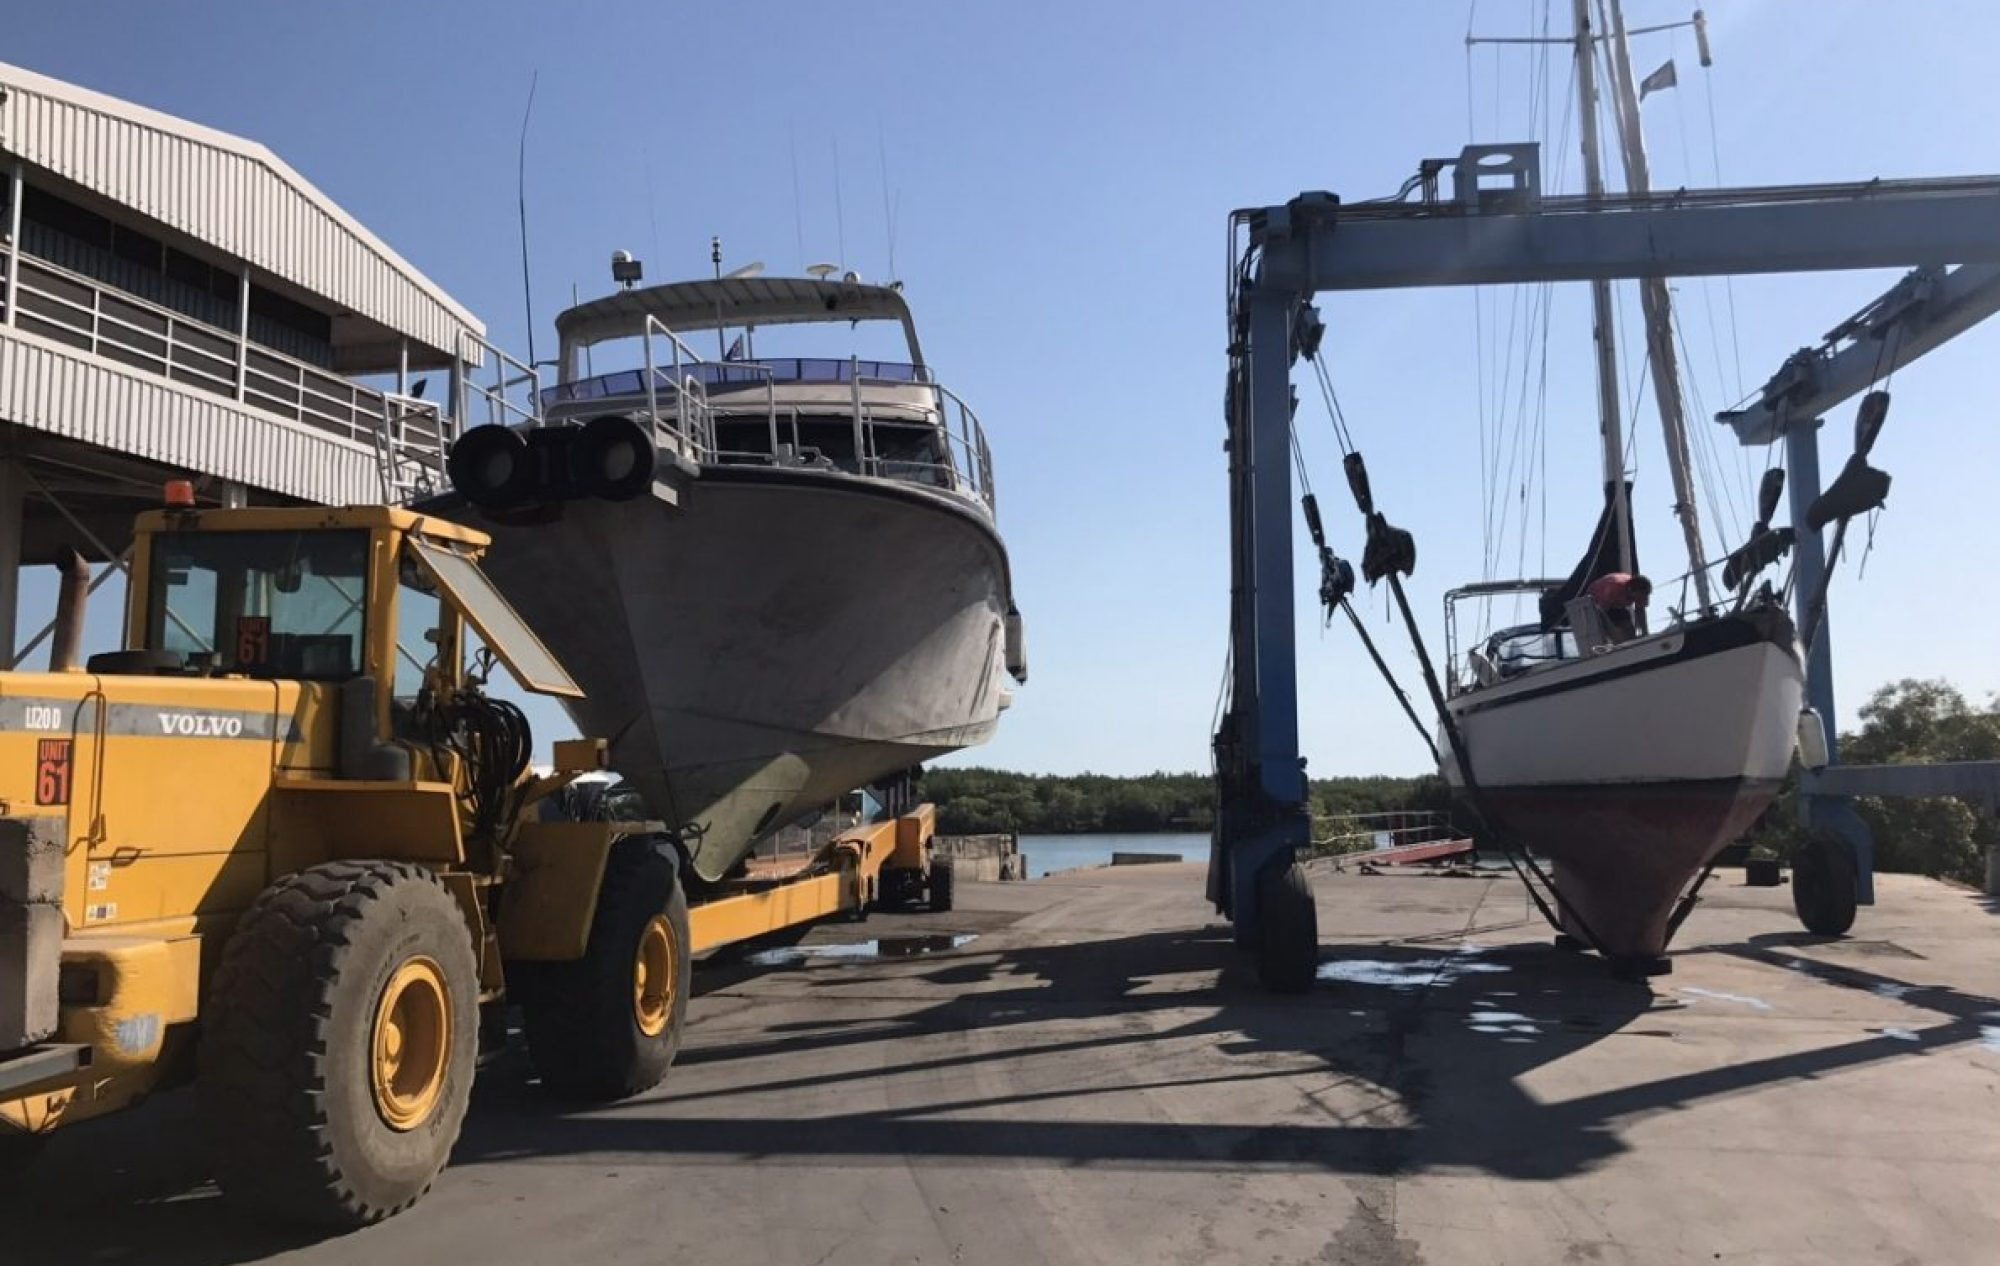 Boat lifting and hard stand storage